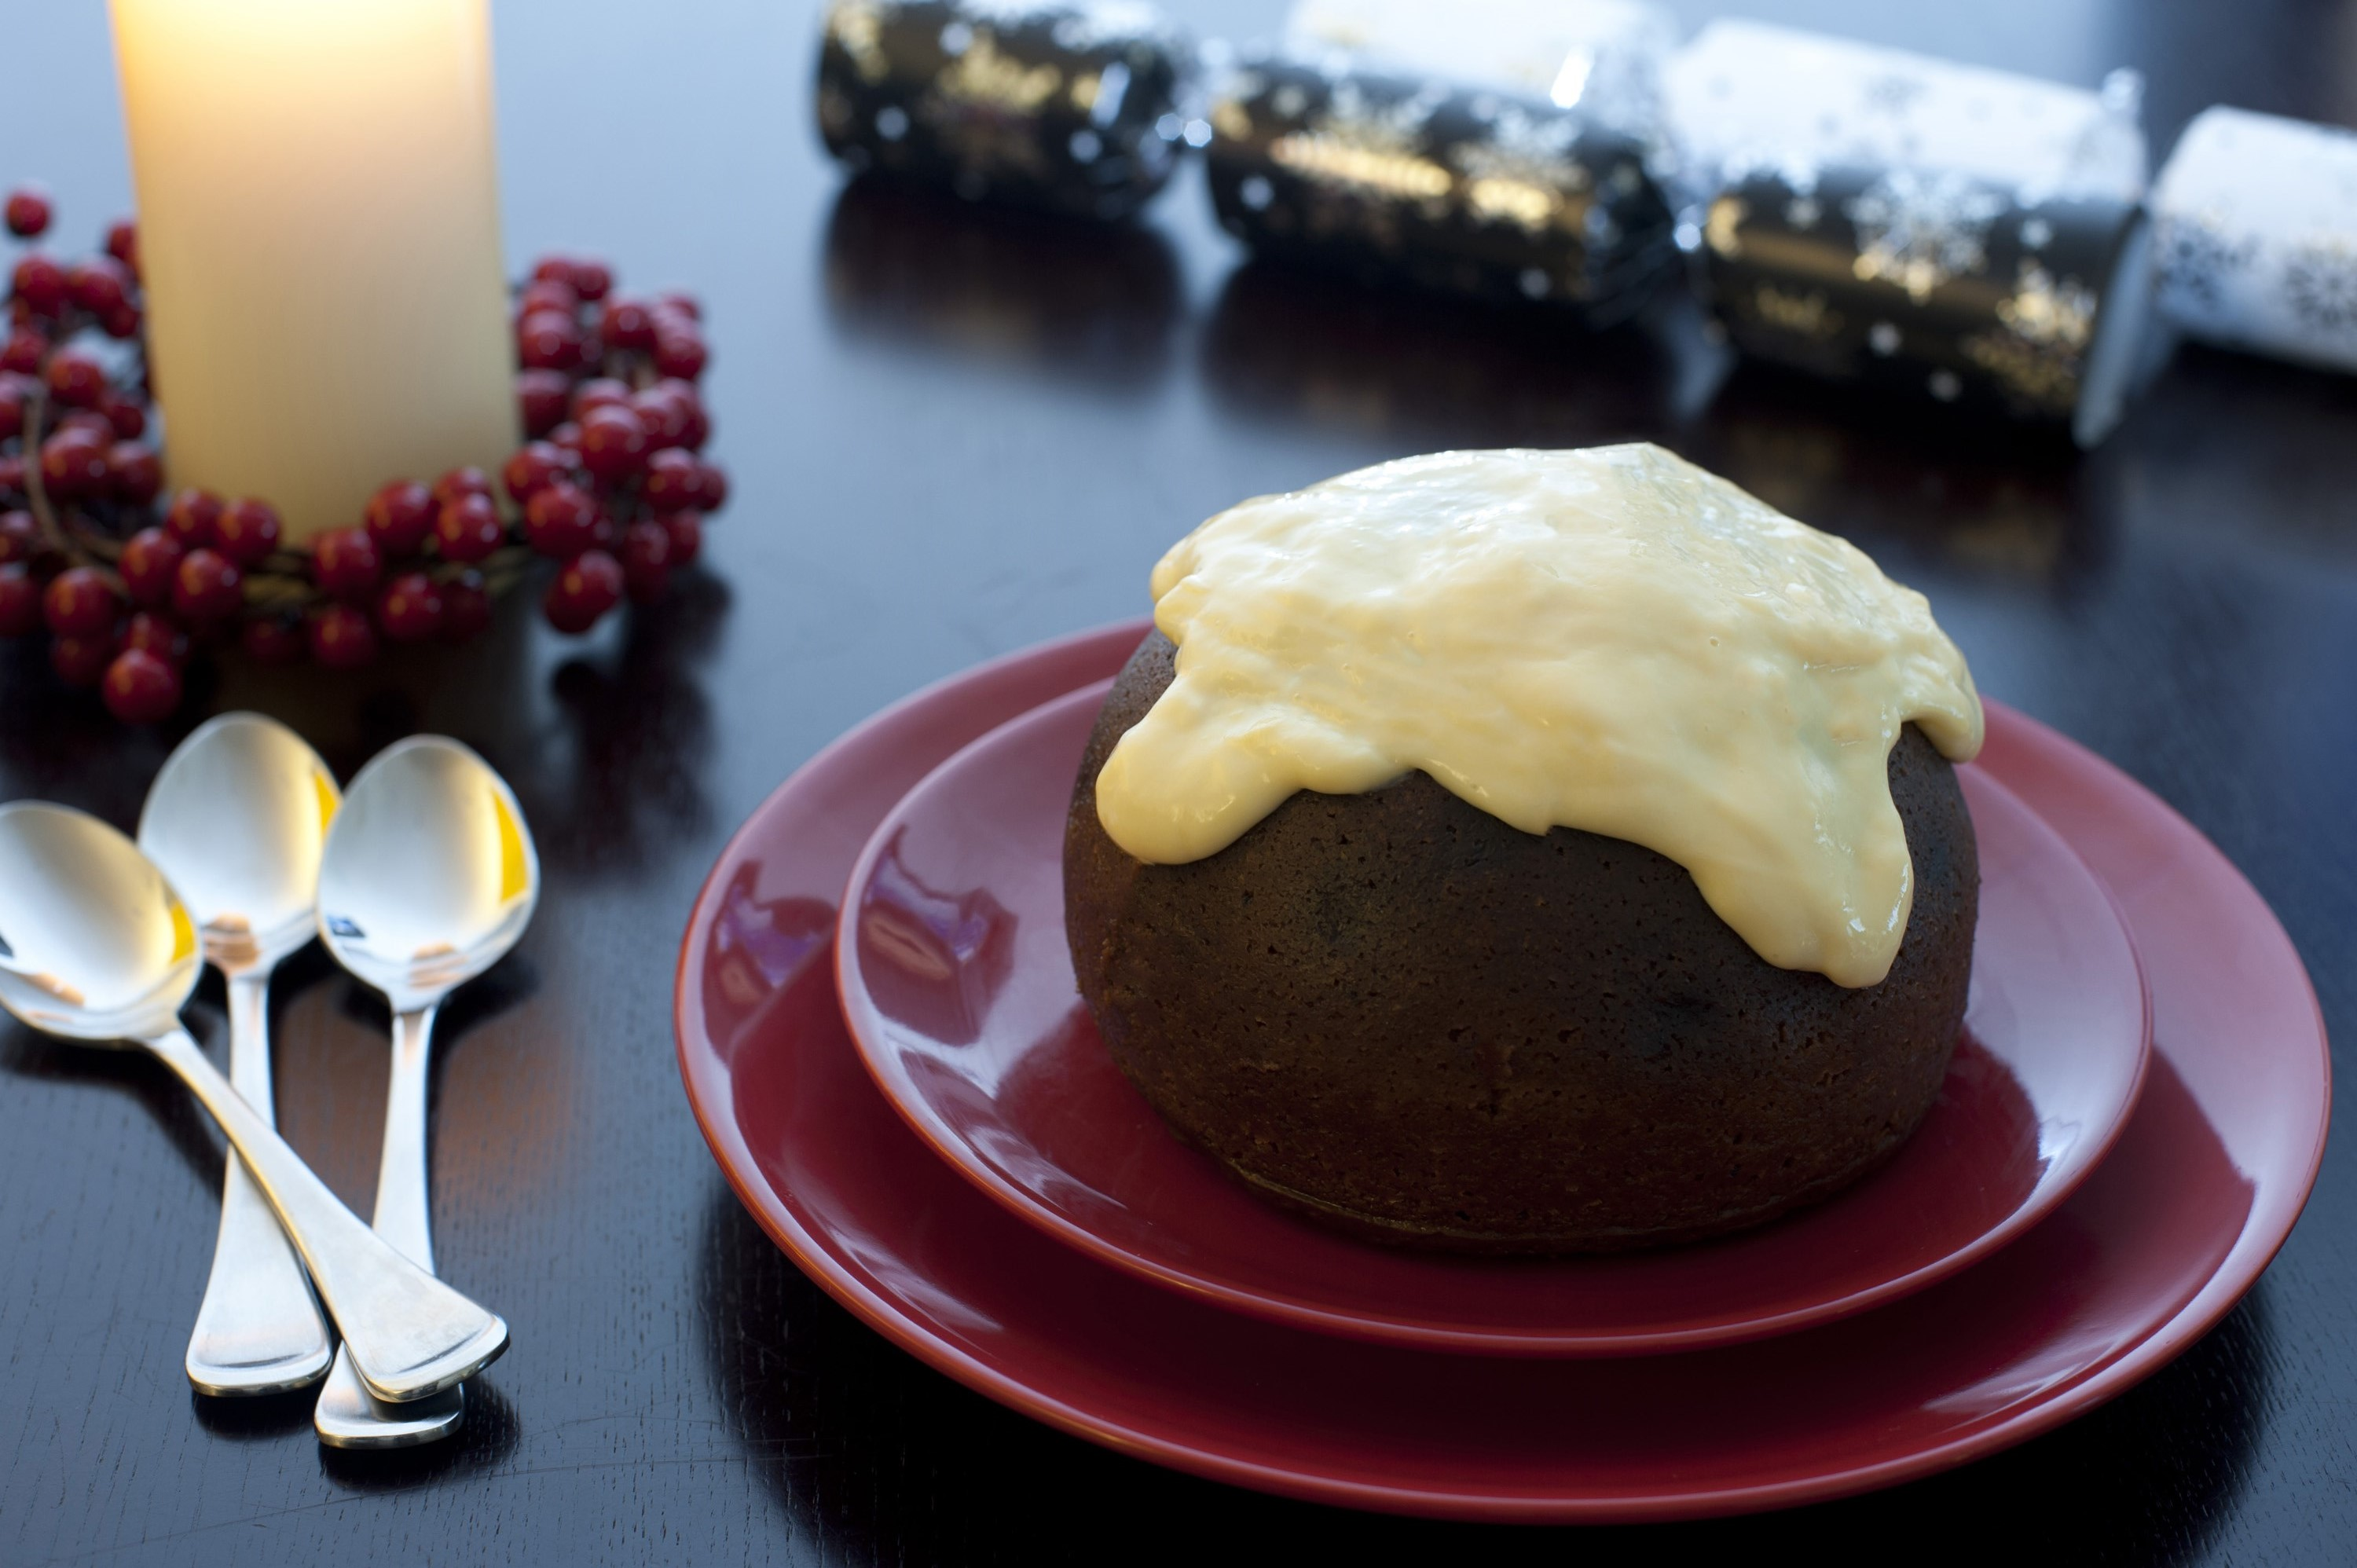 A small traditional steamed fruity Christmas pudding topped with brandy custard and served for dessert on a festive table